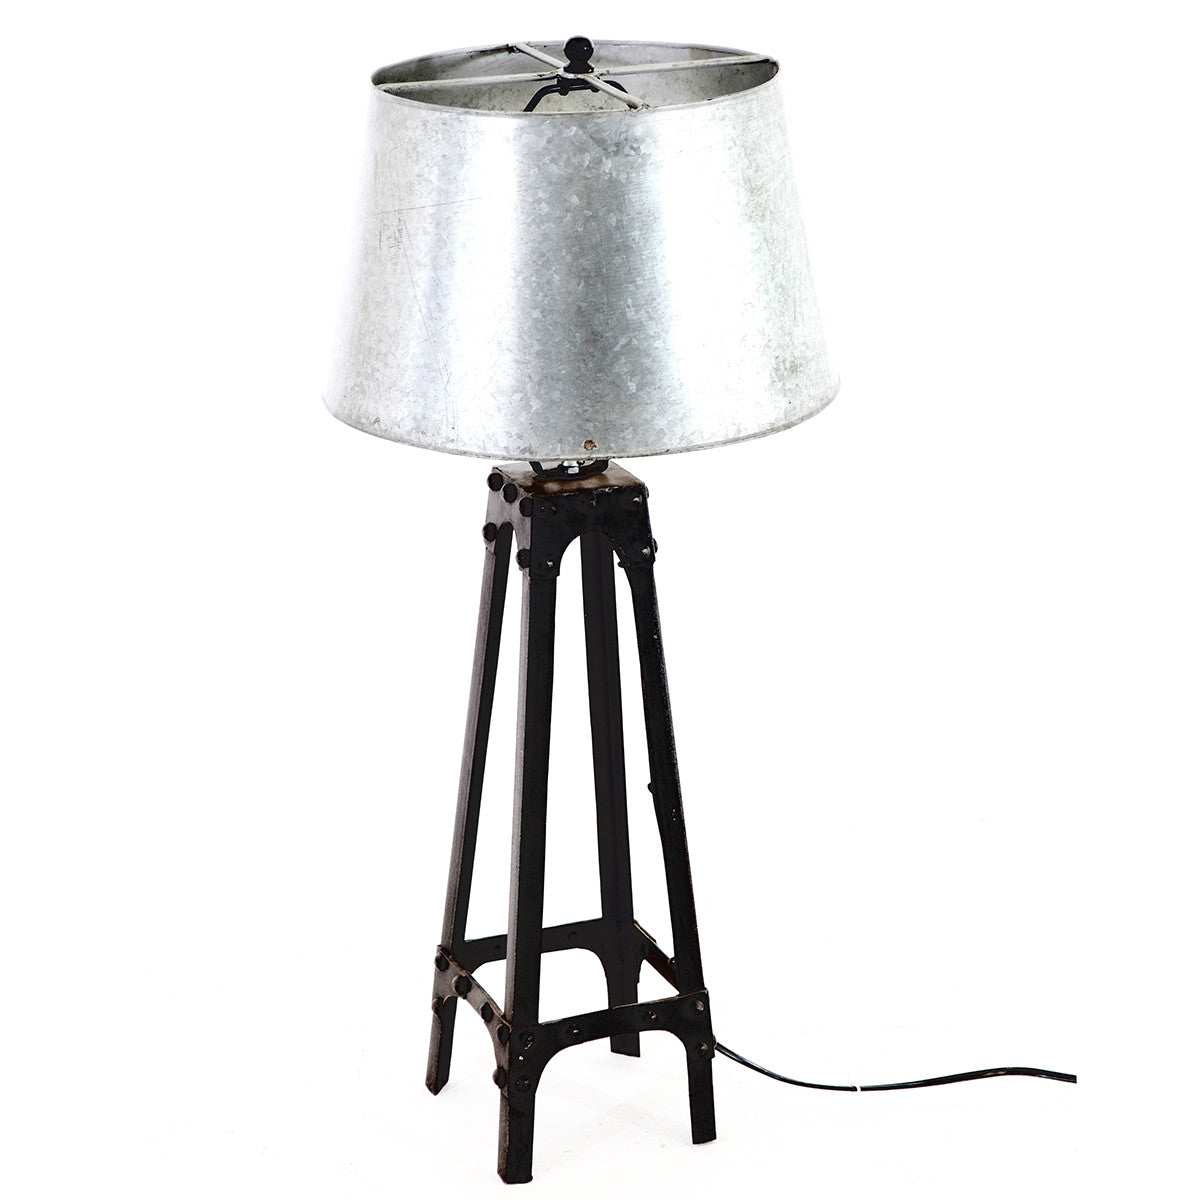 Galvanized Table Lamp – Wrightwood Furniture